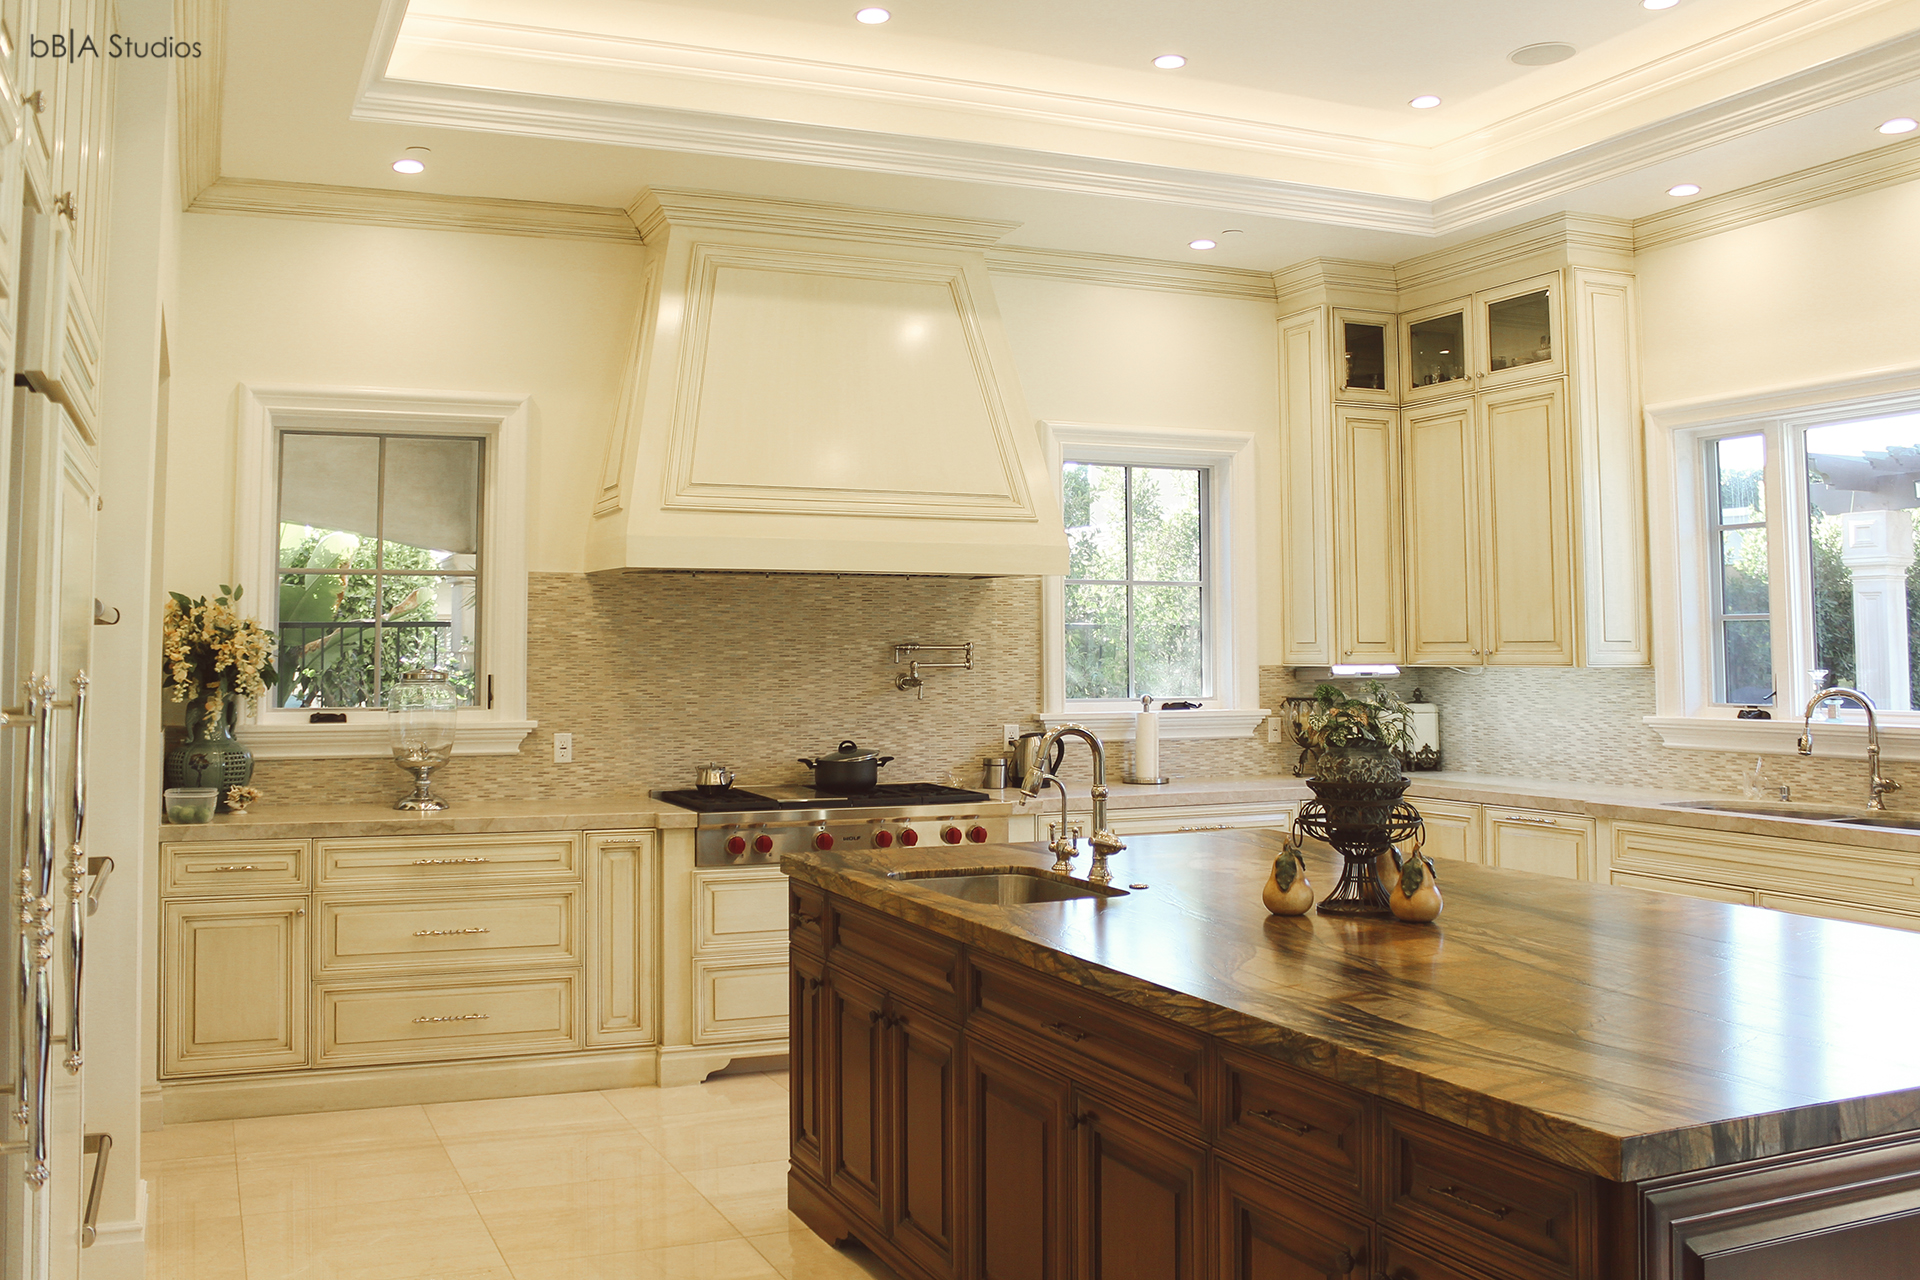 Kitchen view of luxury home